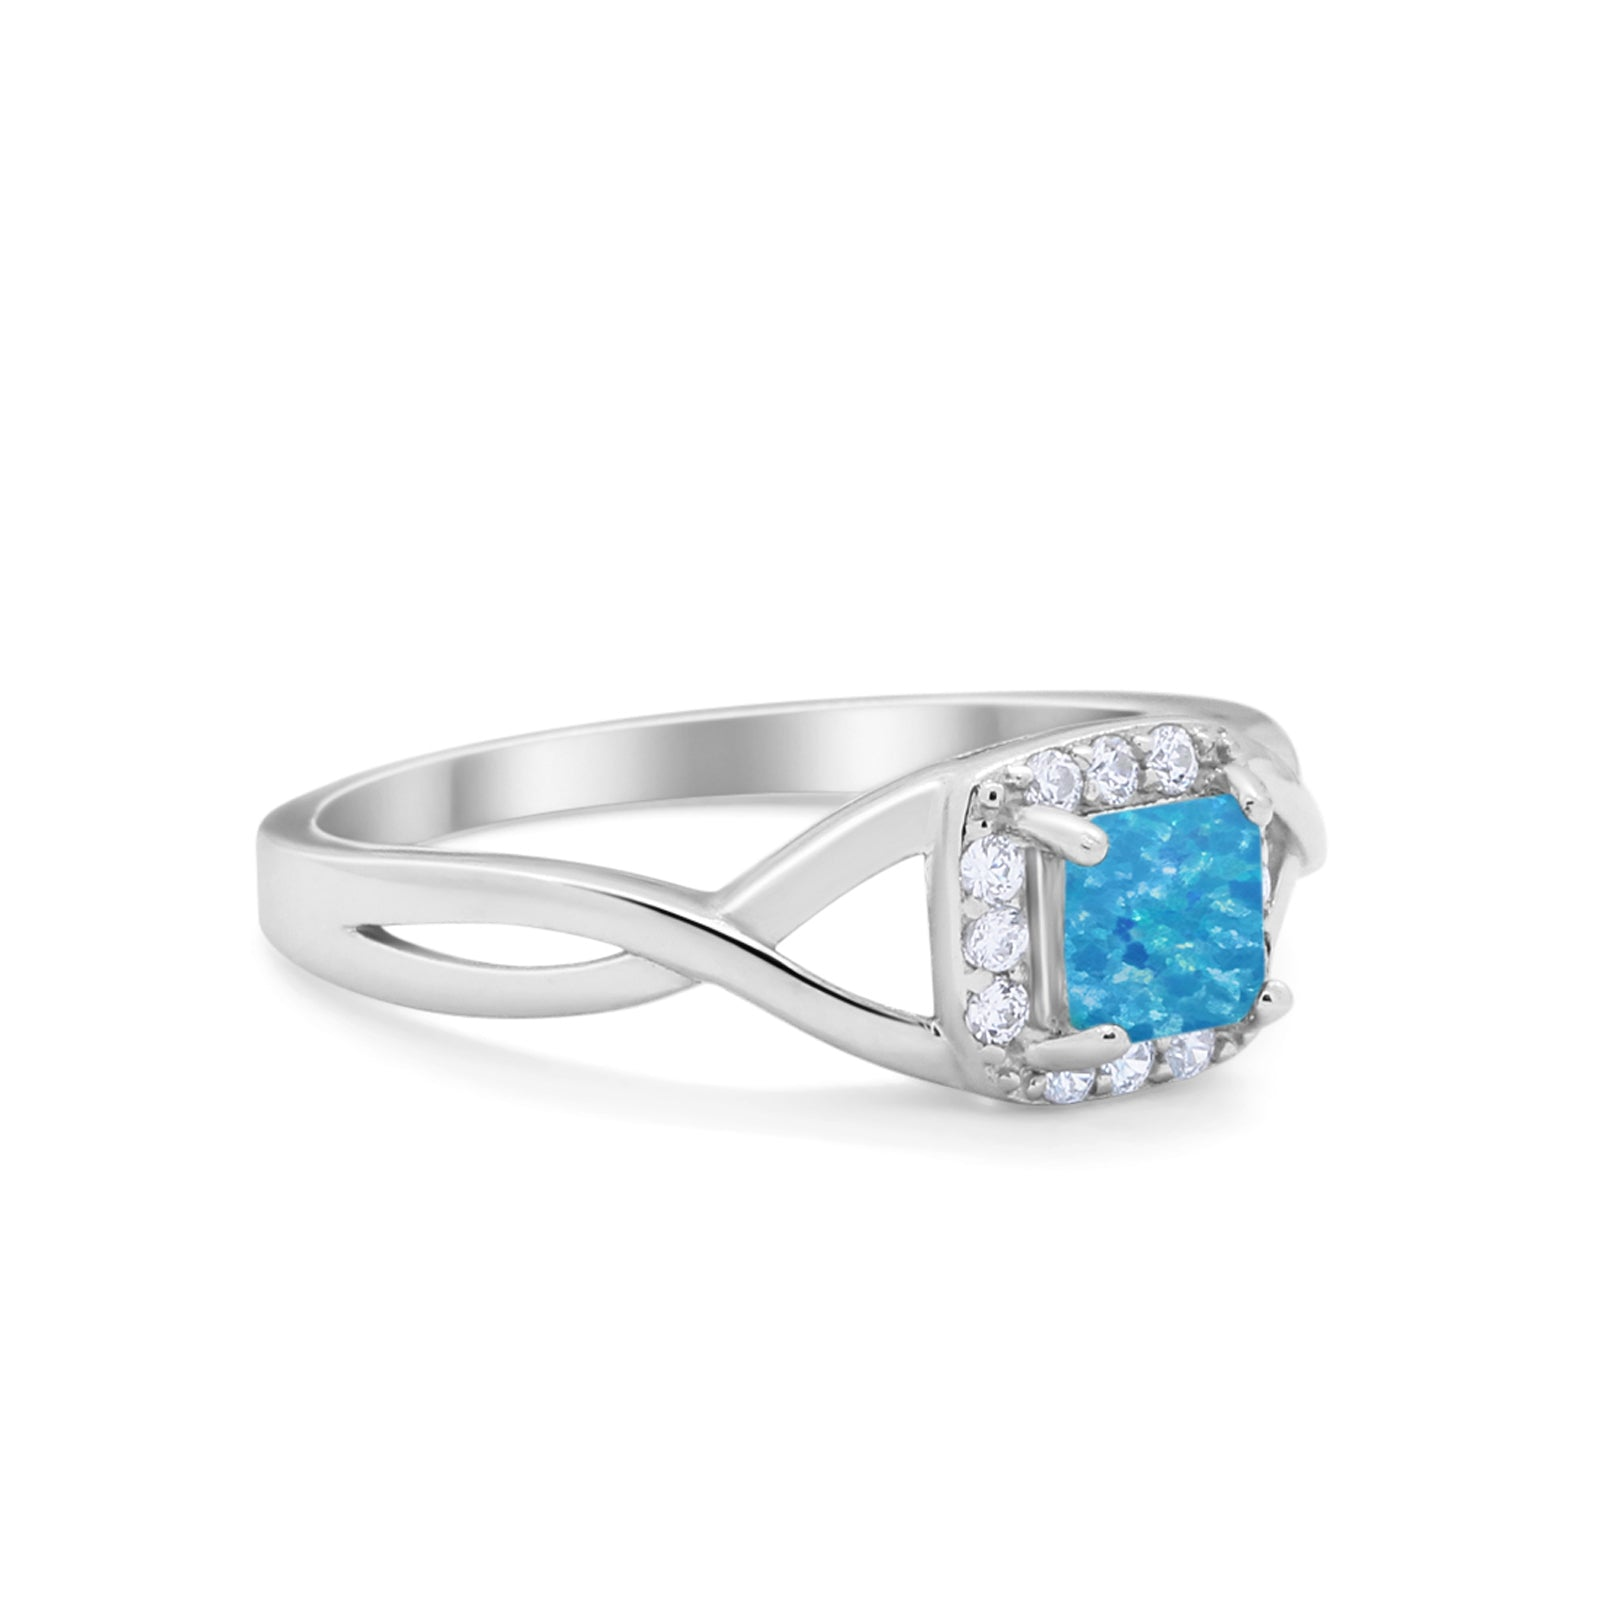 Solitaire Infinity Shank Ring Princess Cut Lab Created Blue Opal 925 Sterling Silver